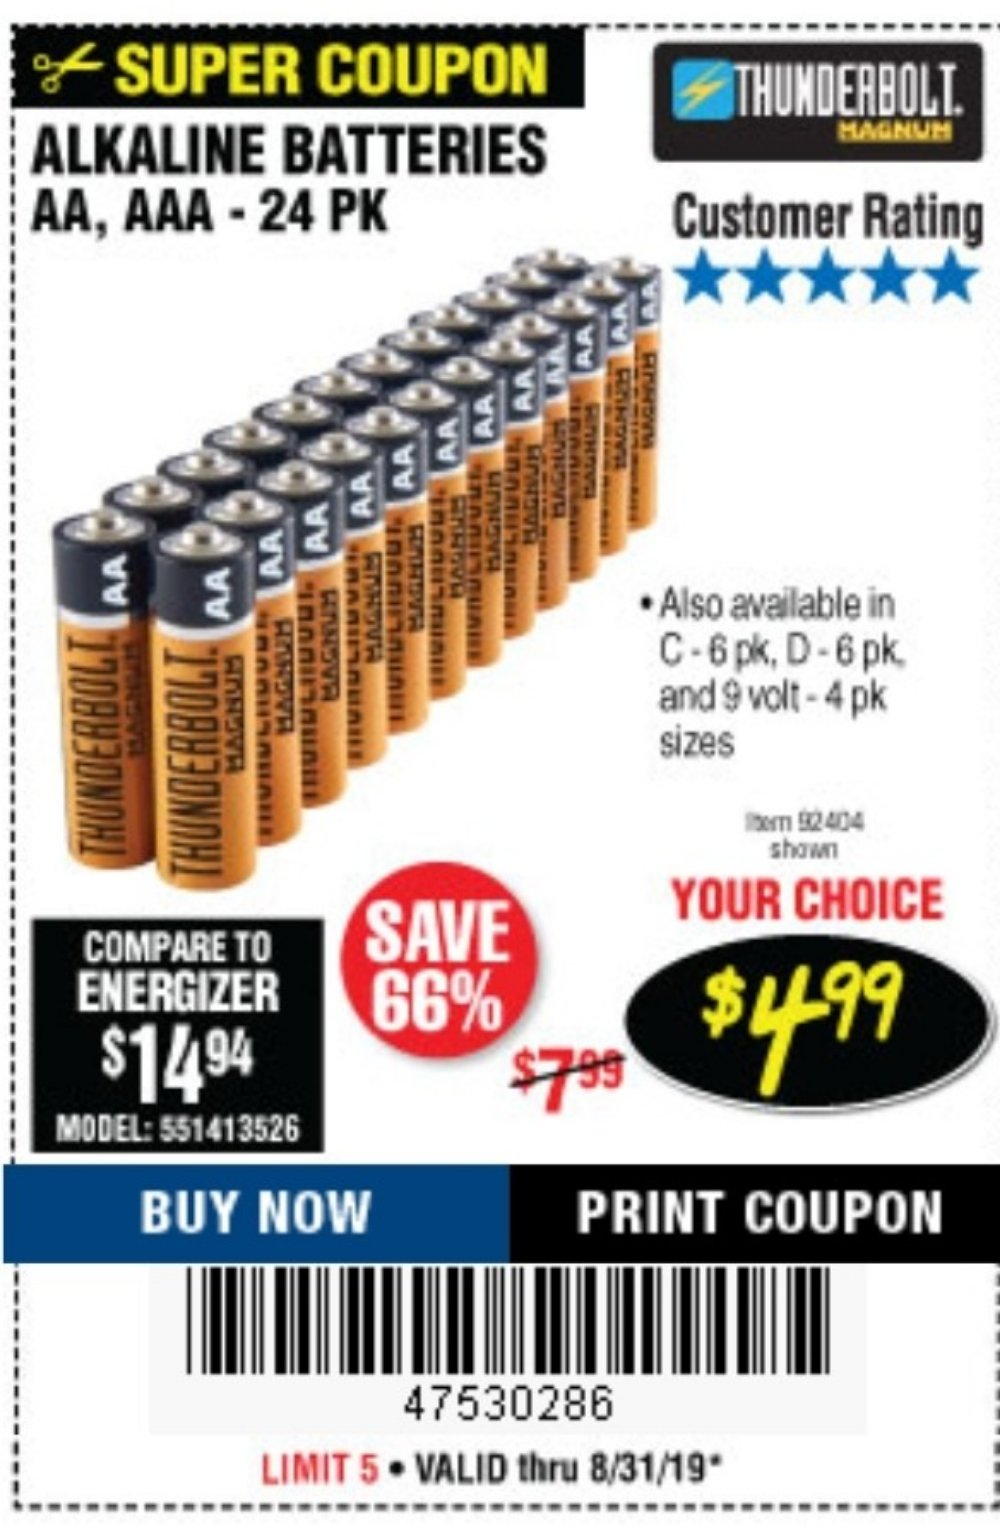 Harbor Freight Coupon, HF Coupons - Alkaline Batteries